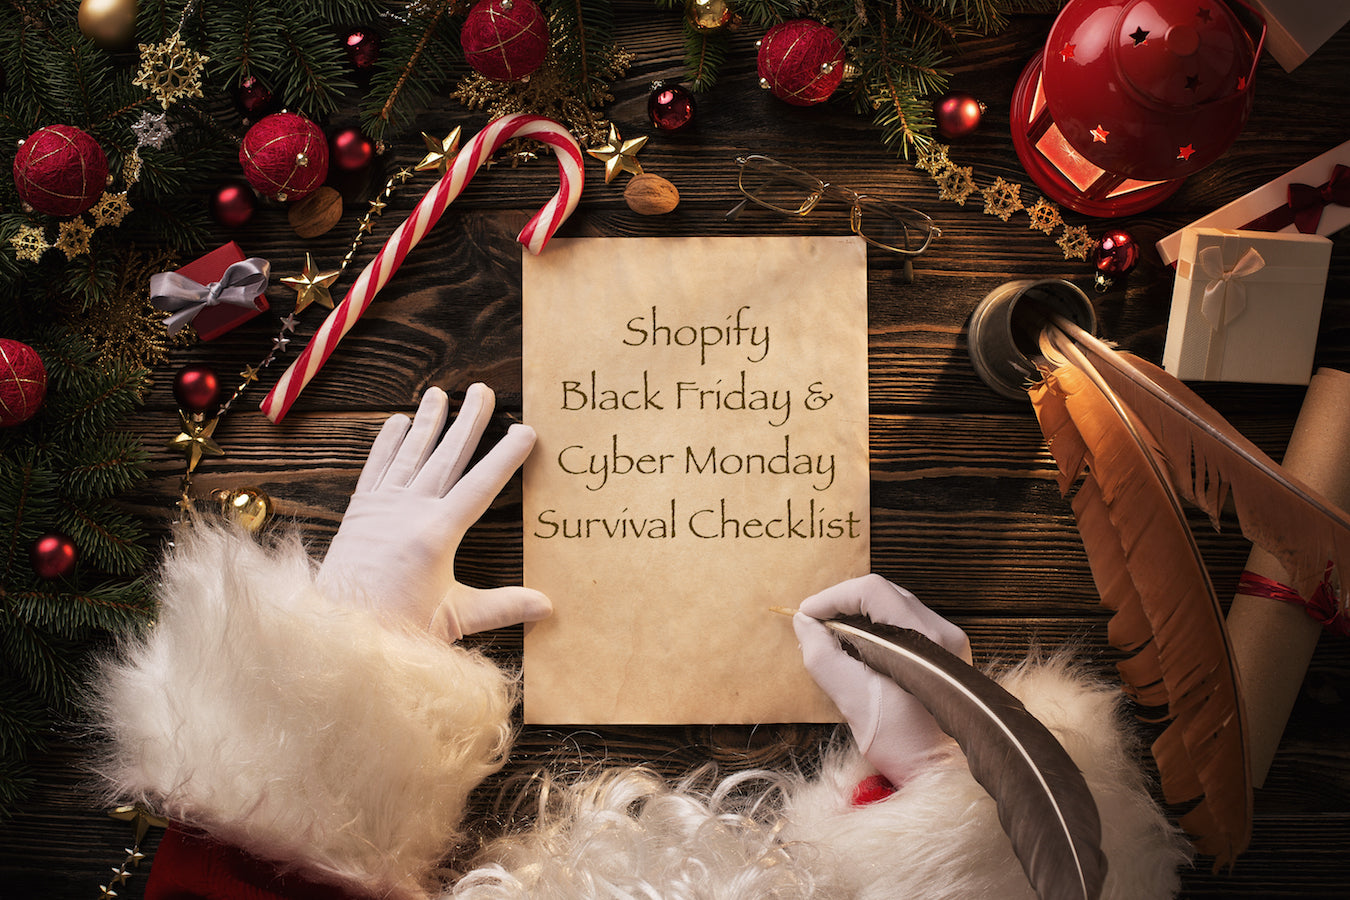 black friday cyber monday 2018 a shopify website survival checklist - Black Friday Deals Christmas Decorations